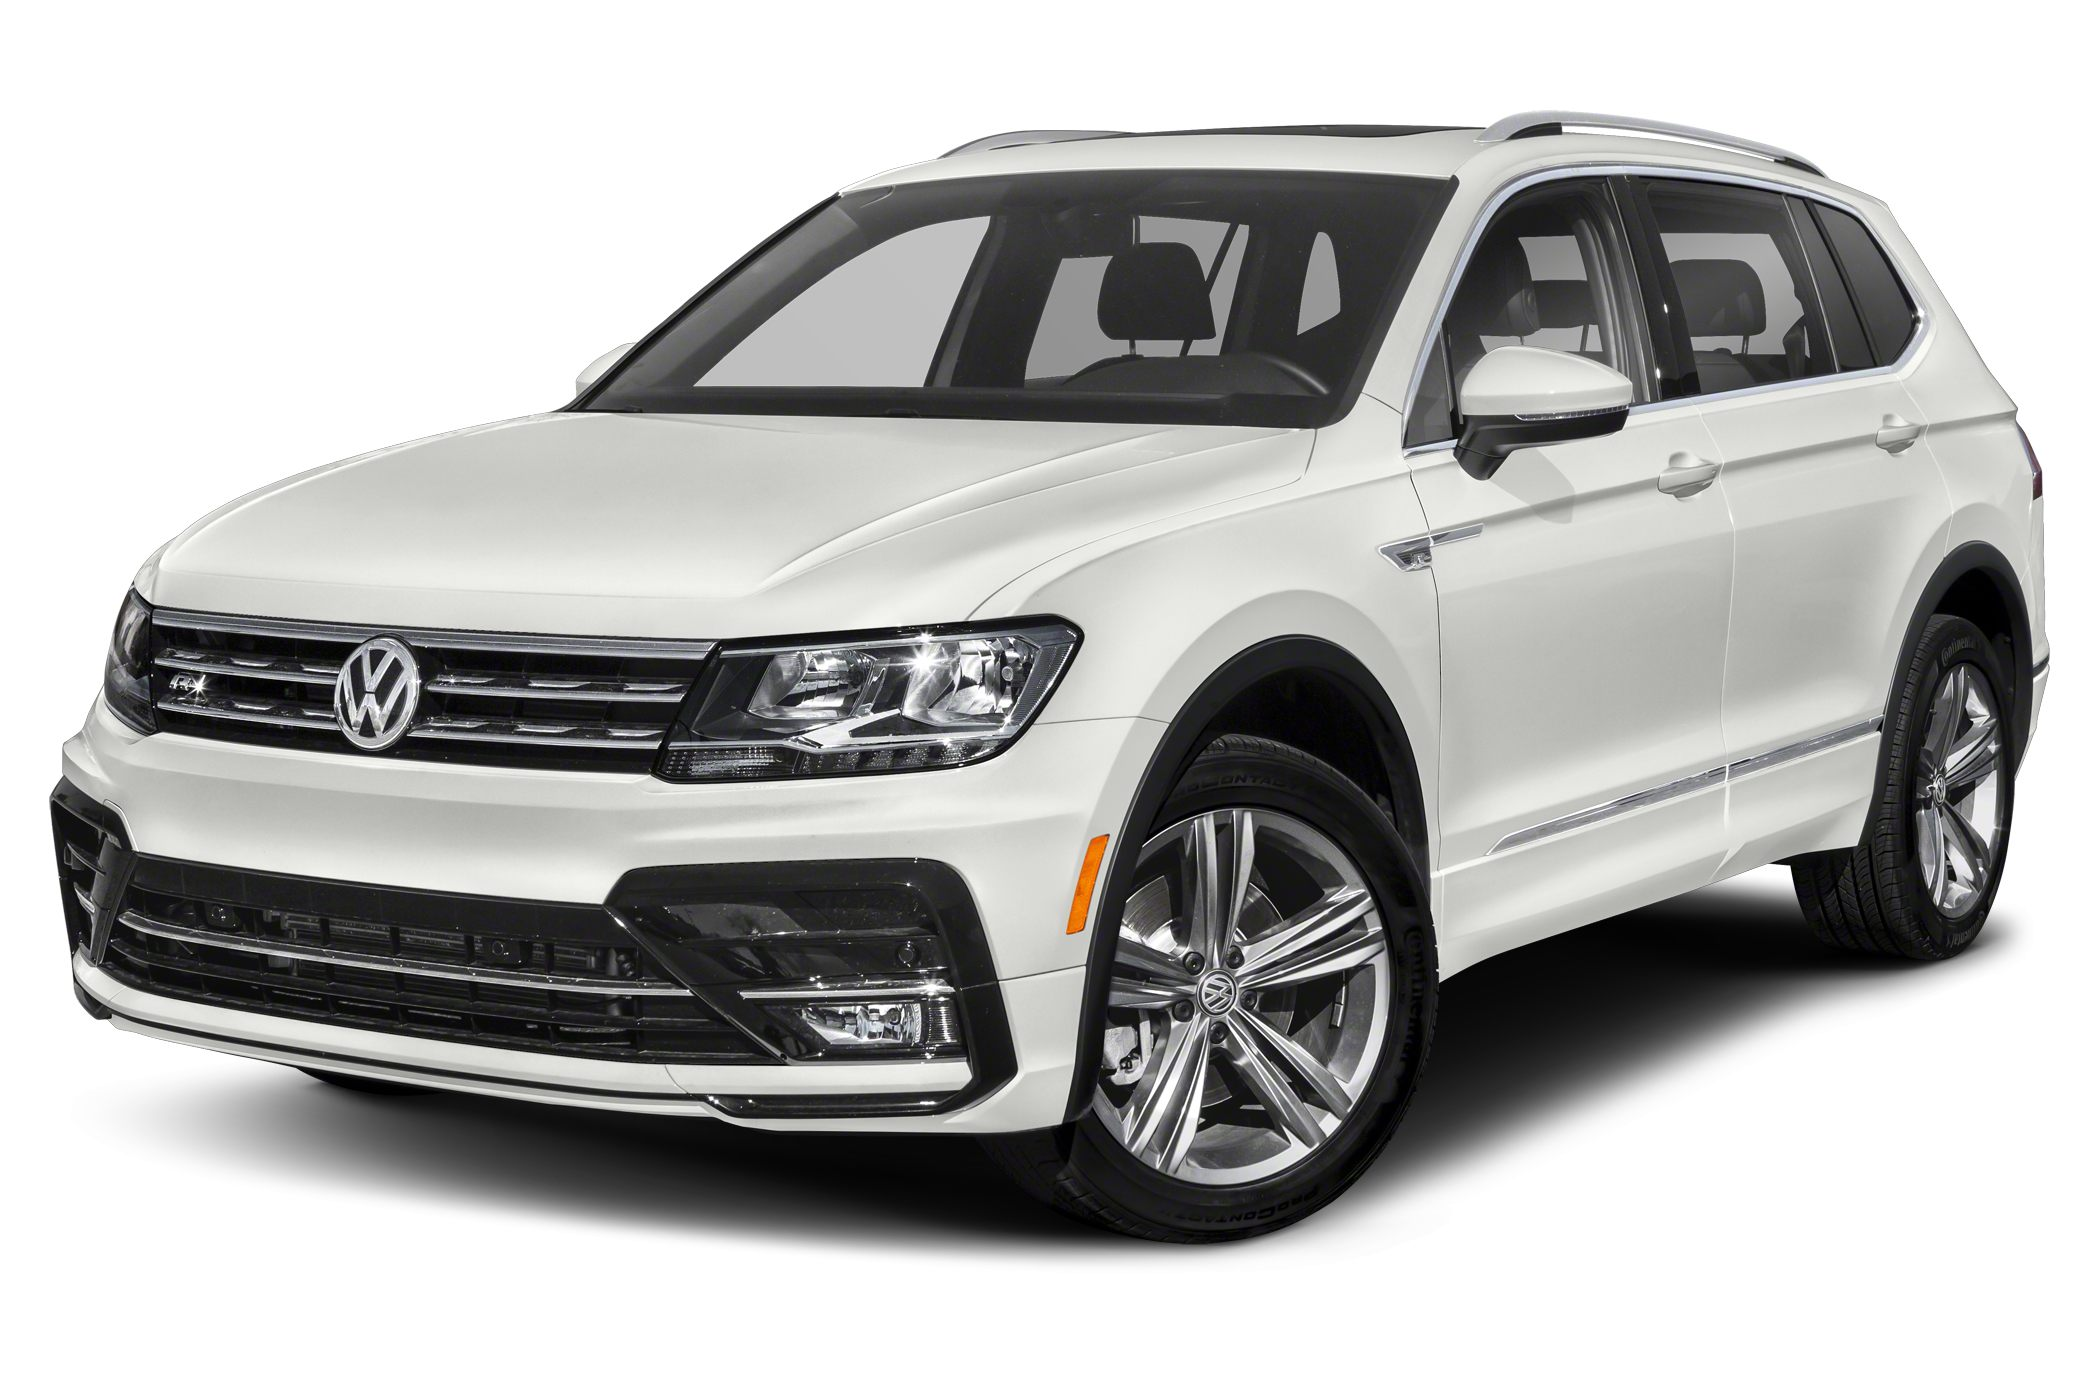 2019 Volkswagen Tiguan 2.0T SEL R-Line 4dr All-wheel Drive 4MOTION